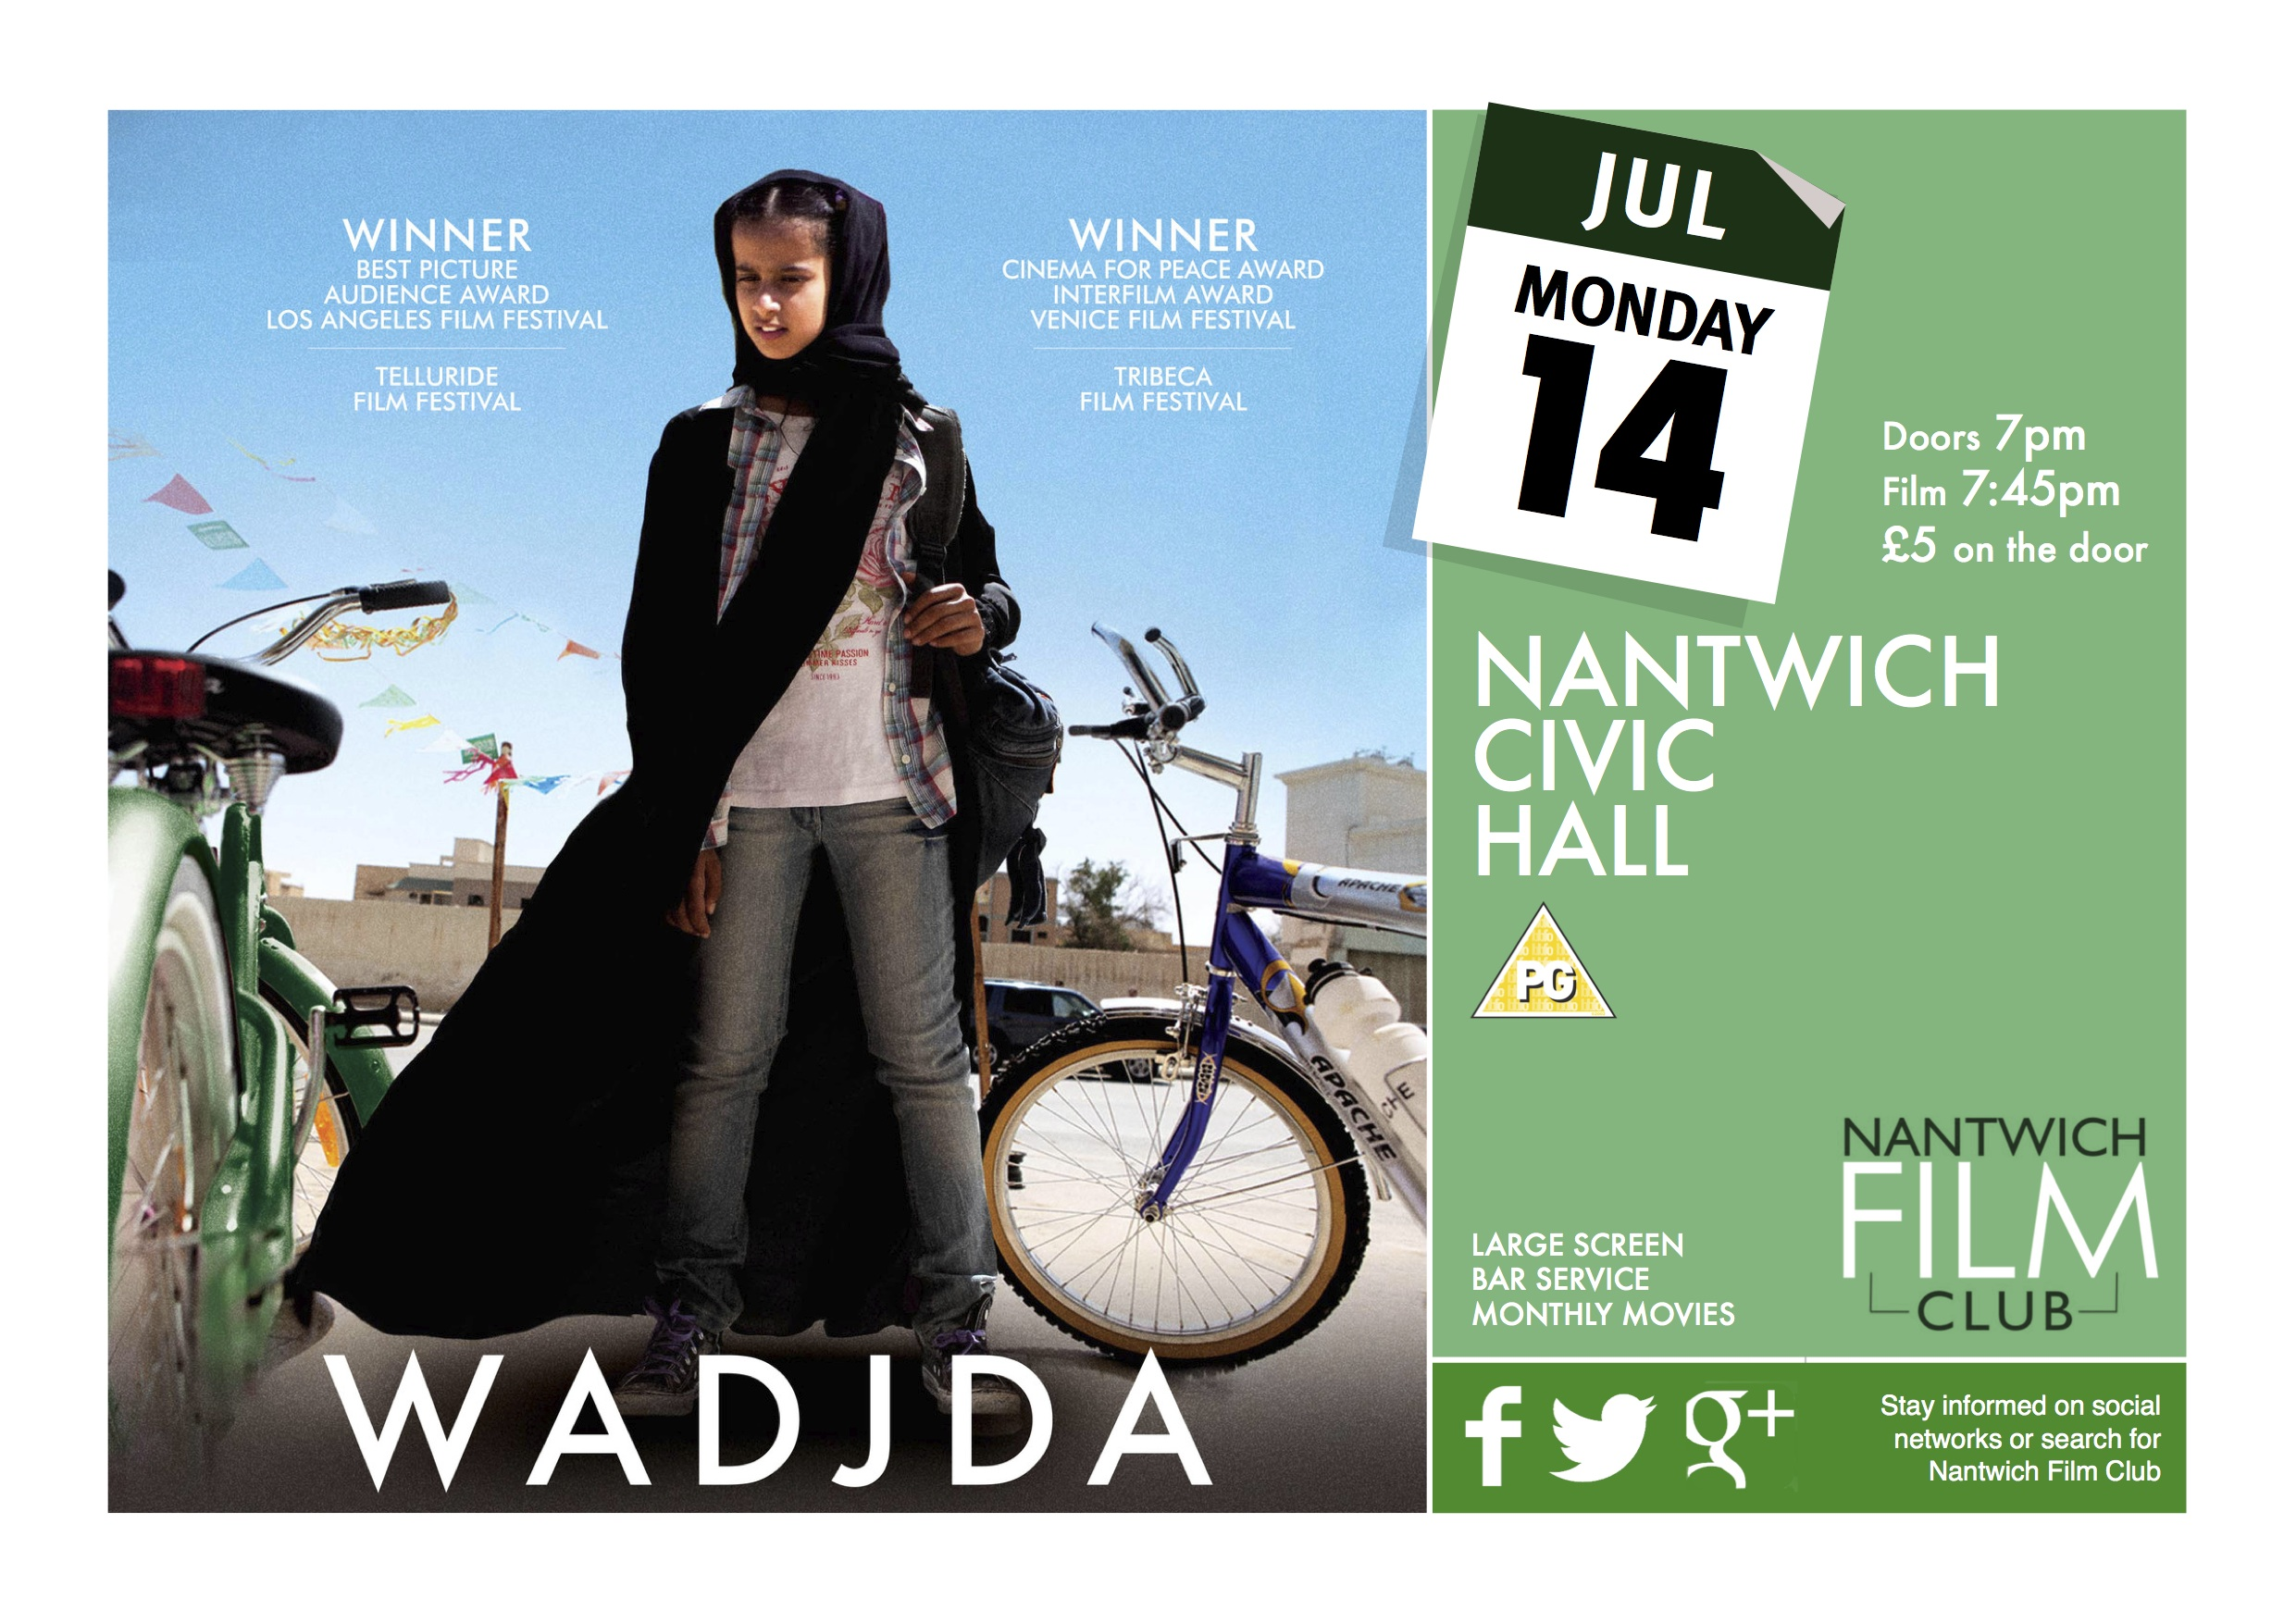 wadjda film review Lff review: saudi arabian film 'wadjda' is a phenomenal debut from an exciting new talent.